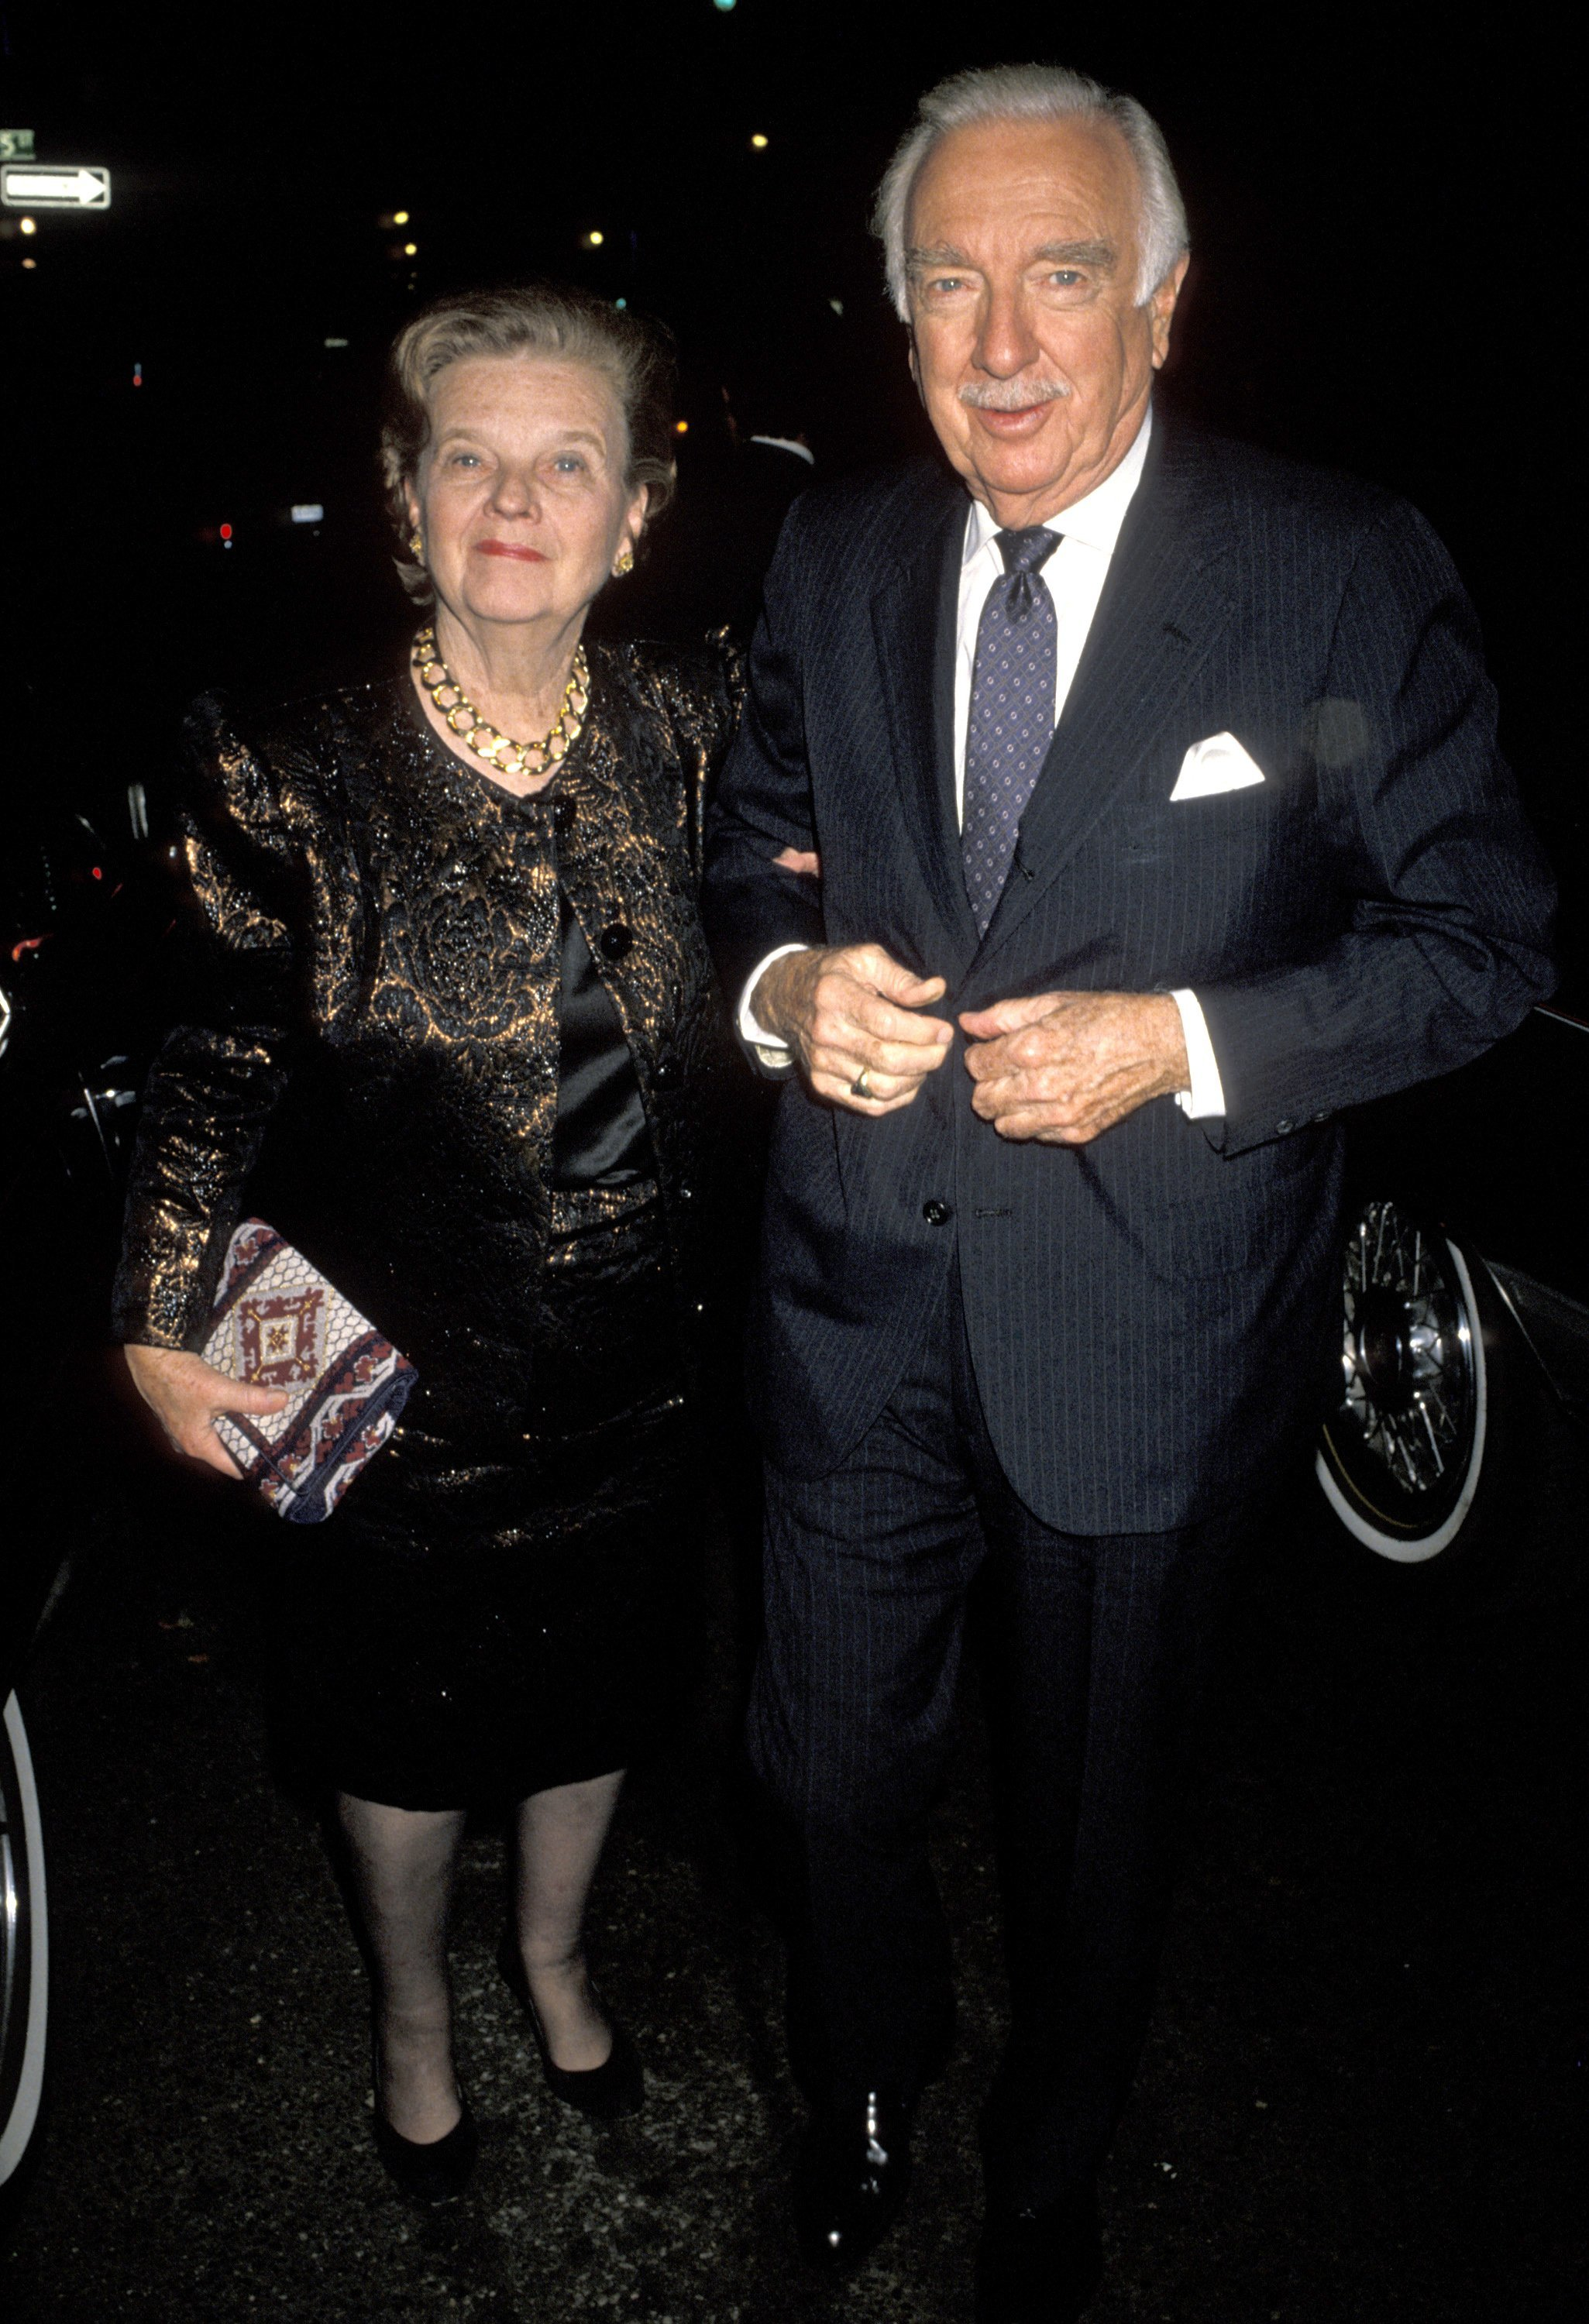 Walter Cronkite and wife Betsy in New York City on October 30, 1990 | Source: Getty Images